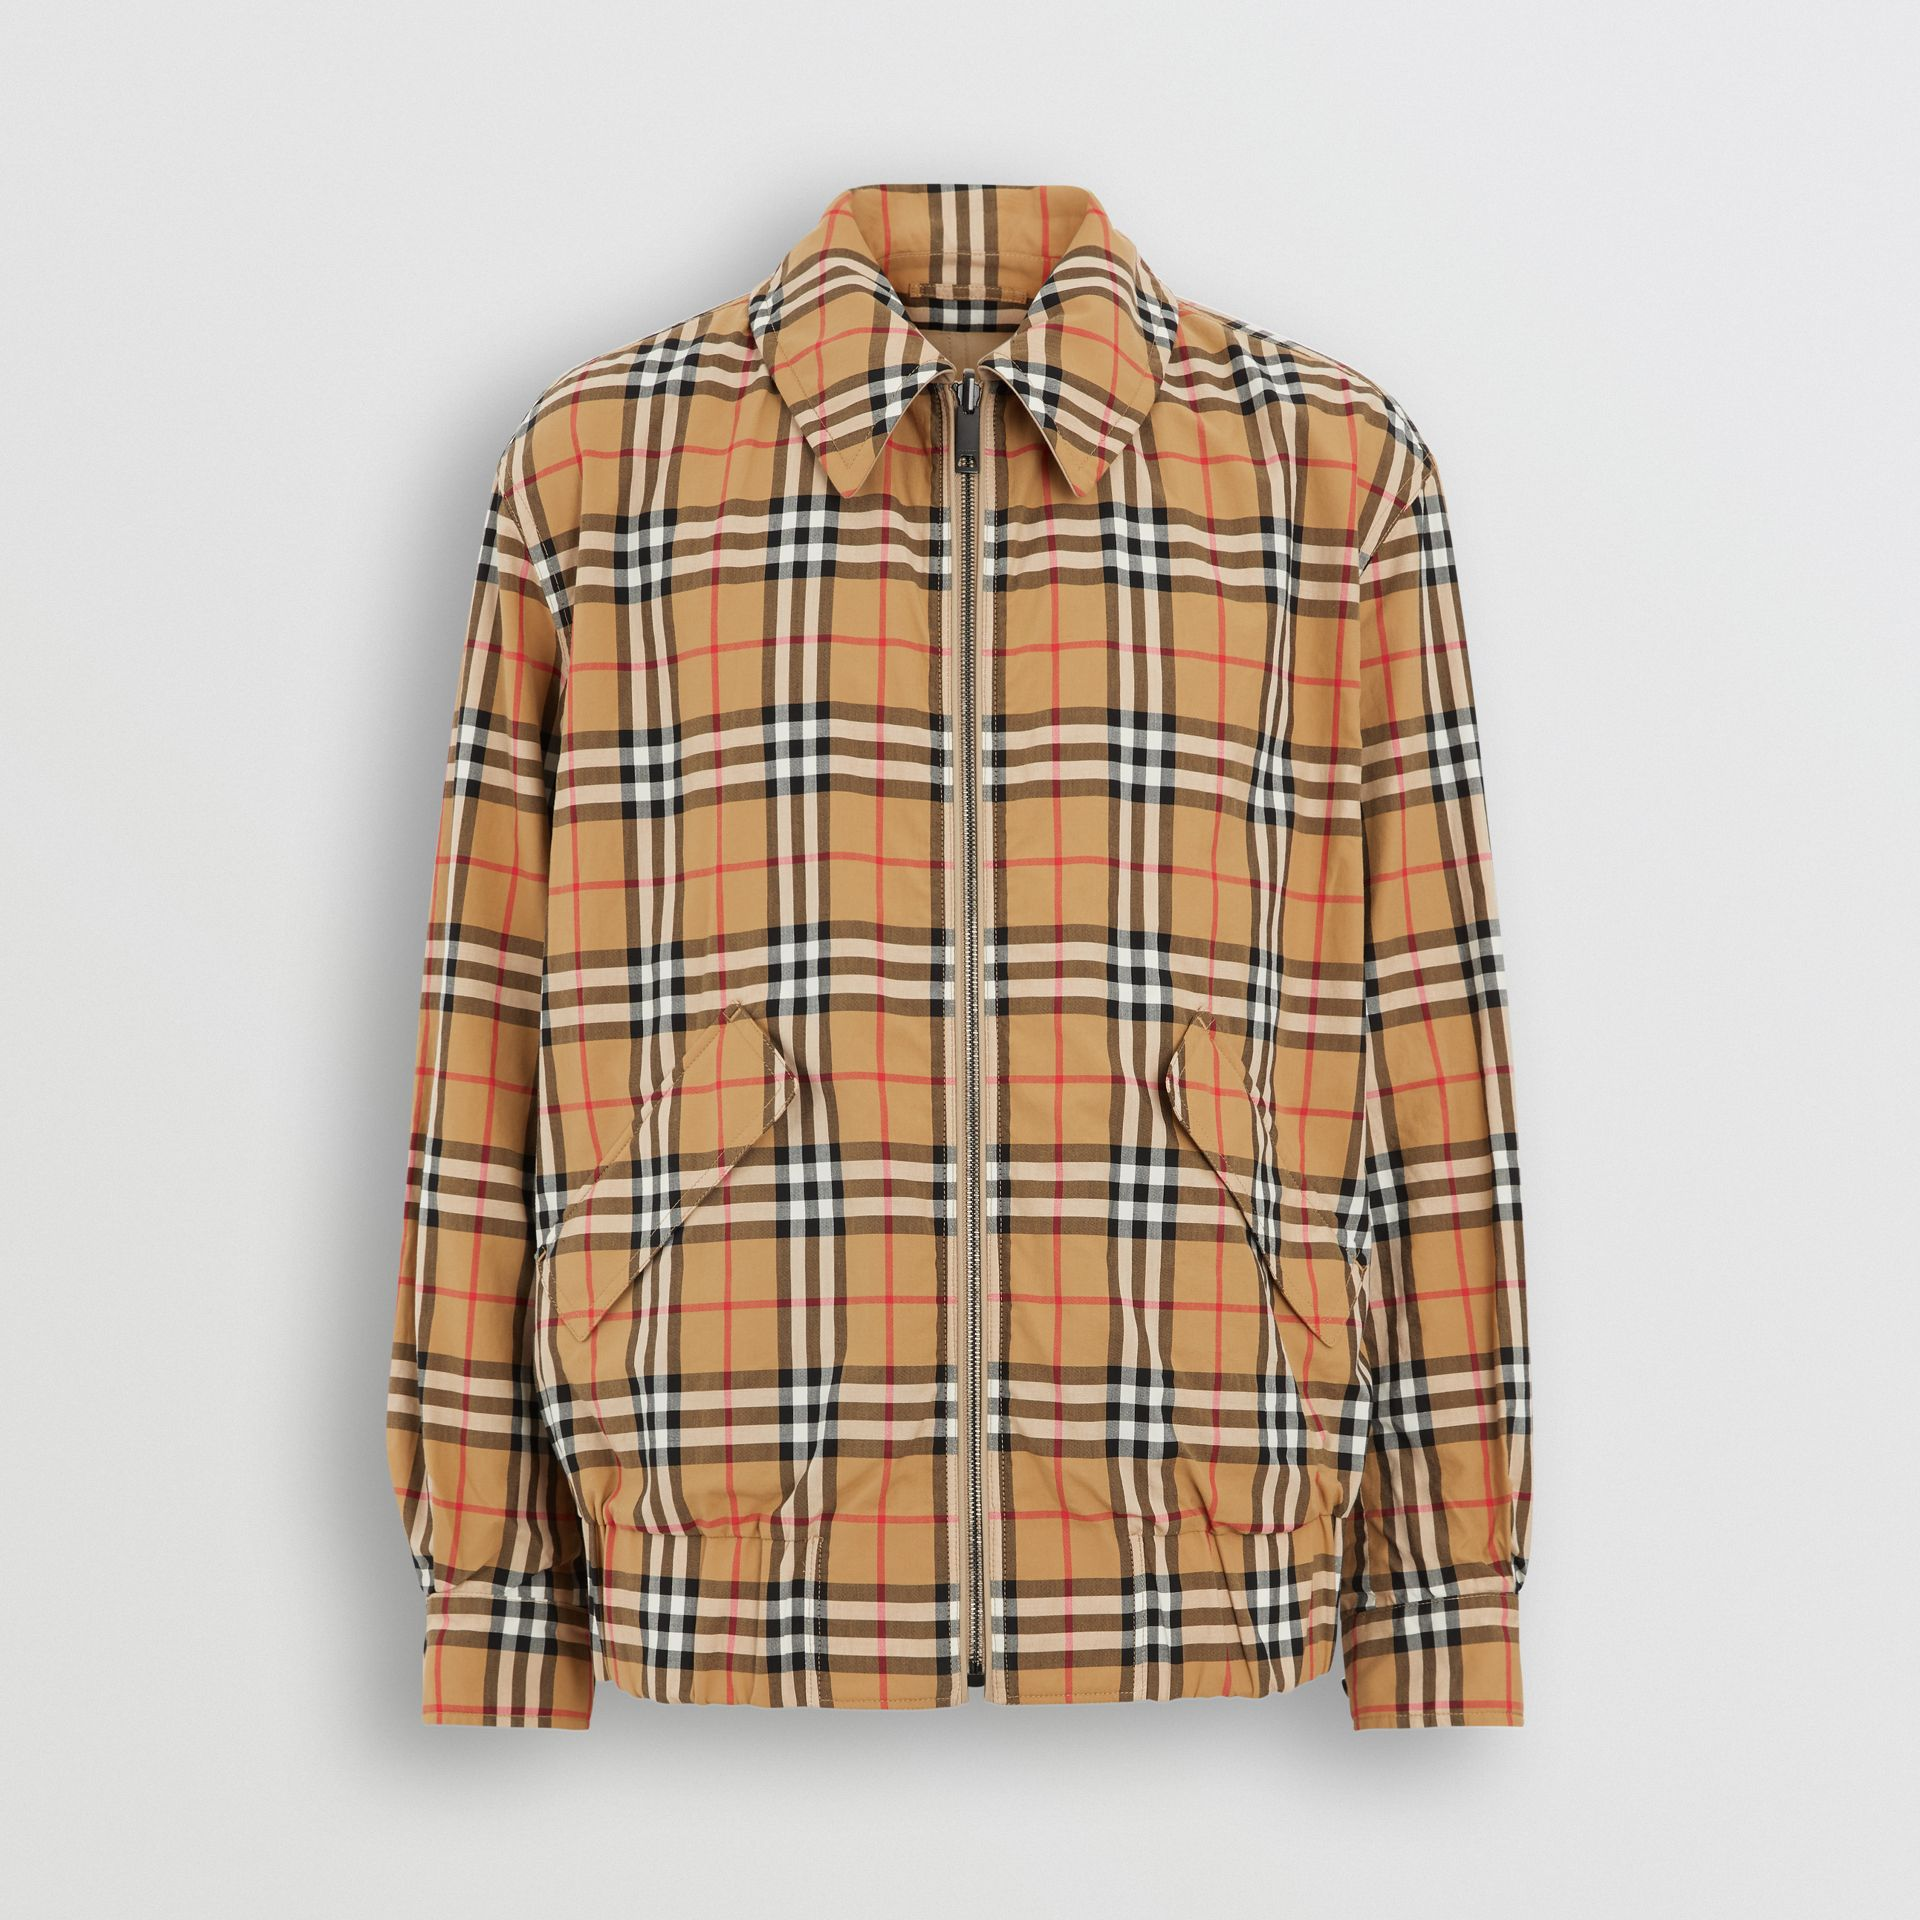 Veste Harrington réversible en gabardine et à motif check (Miel) - Homme | Burberry - photo de la galerie 5